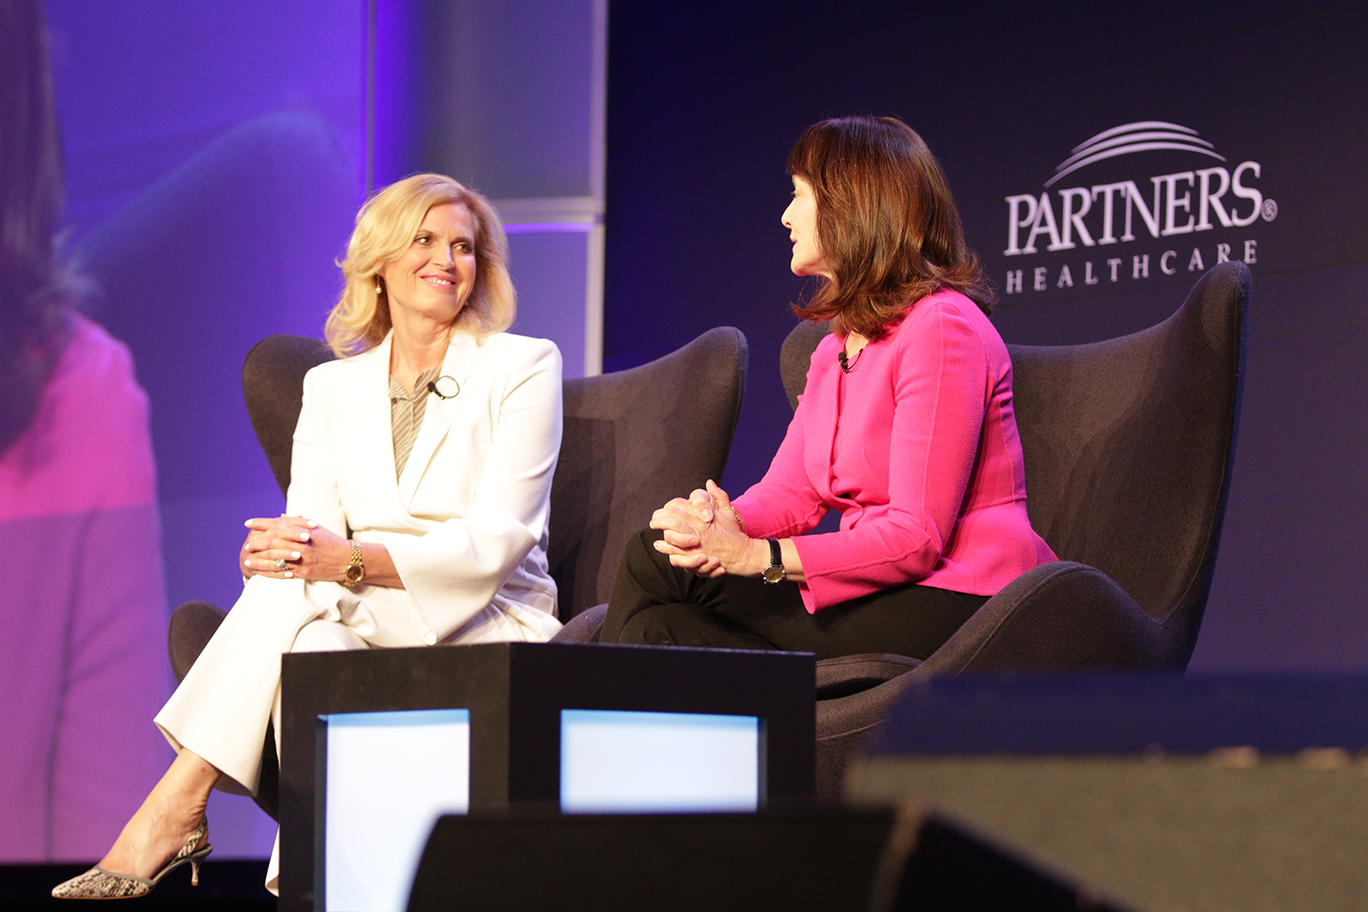 Ann Romney, left, shares her experiences as an MS patient with Dr. Nancy Snyderman of NBC News.